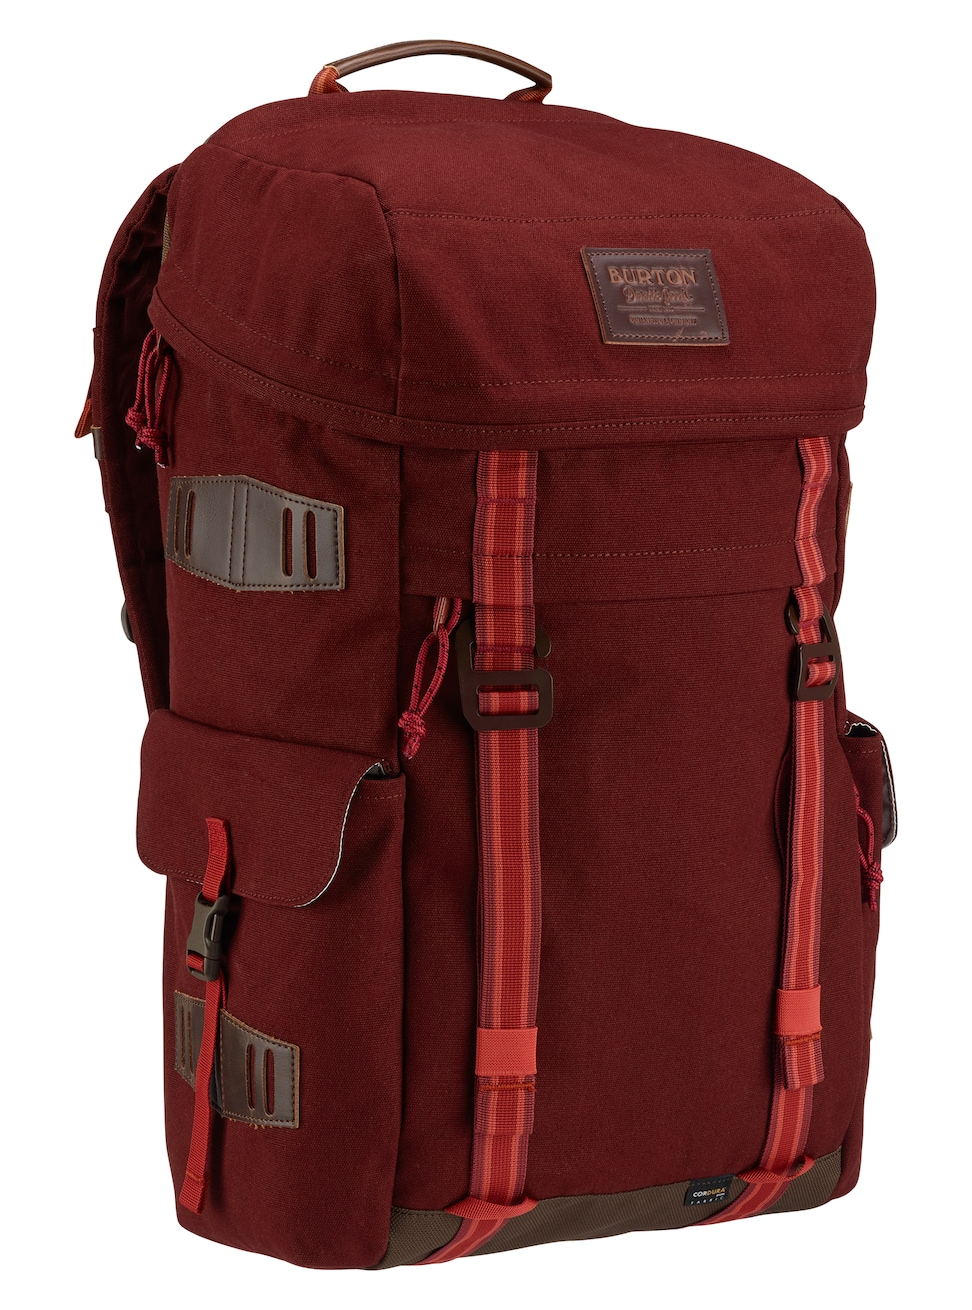 Bags, Backpacks, & Luggage | Burton Snowboards